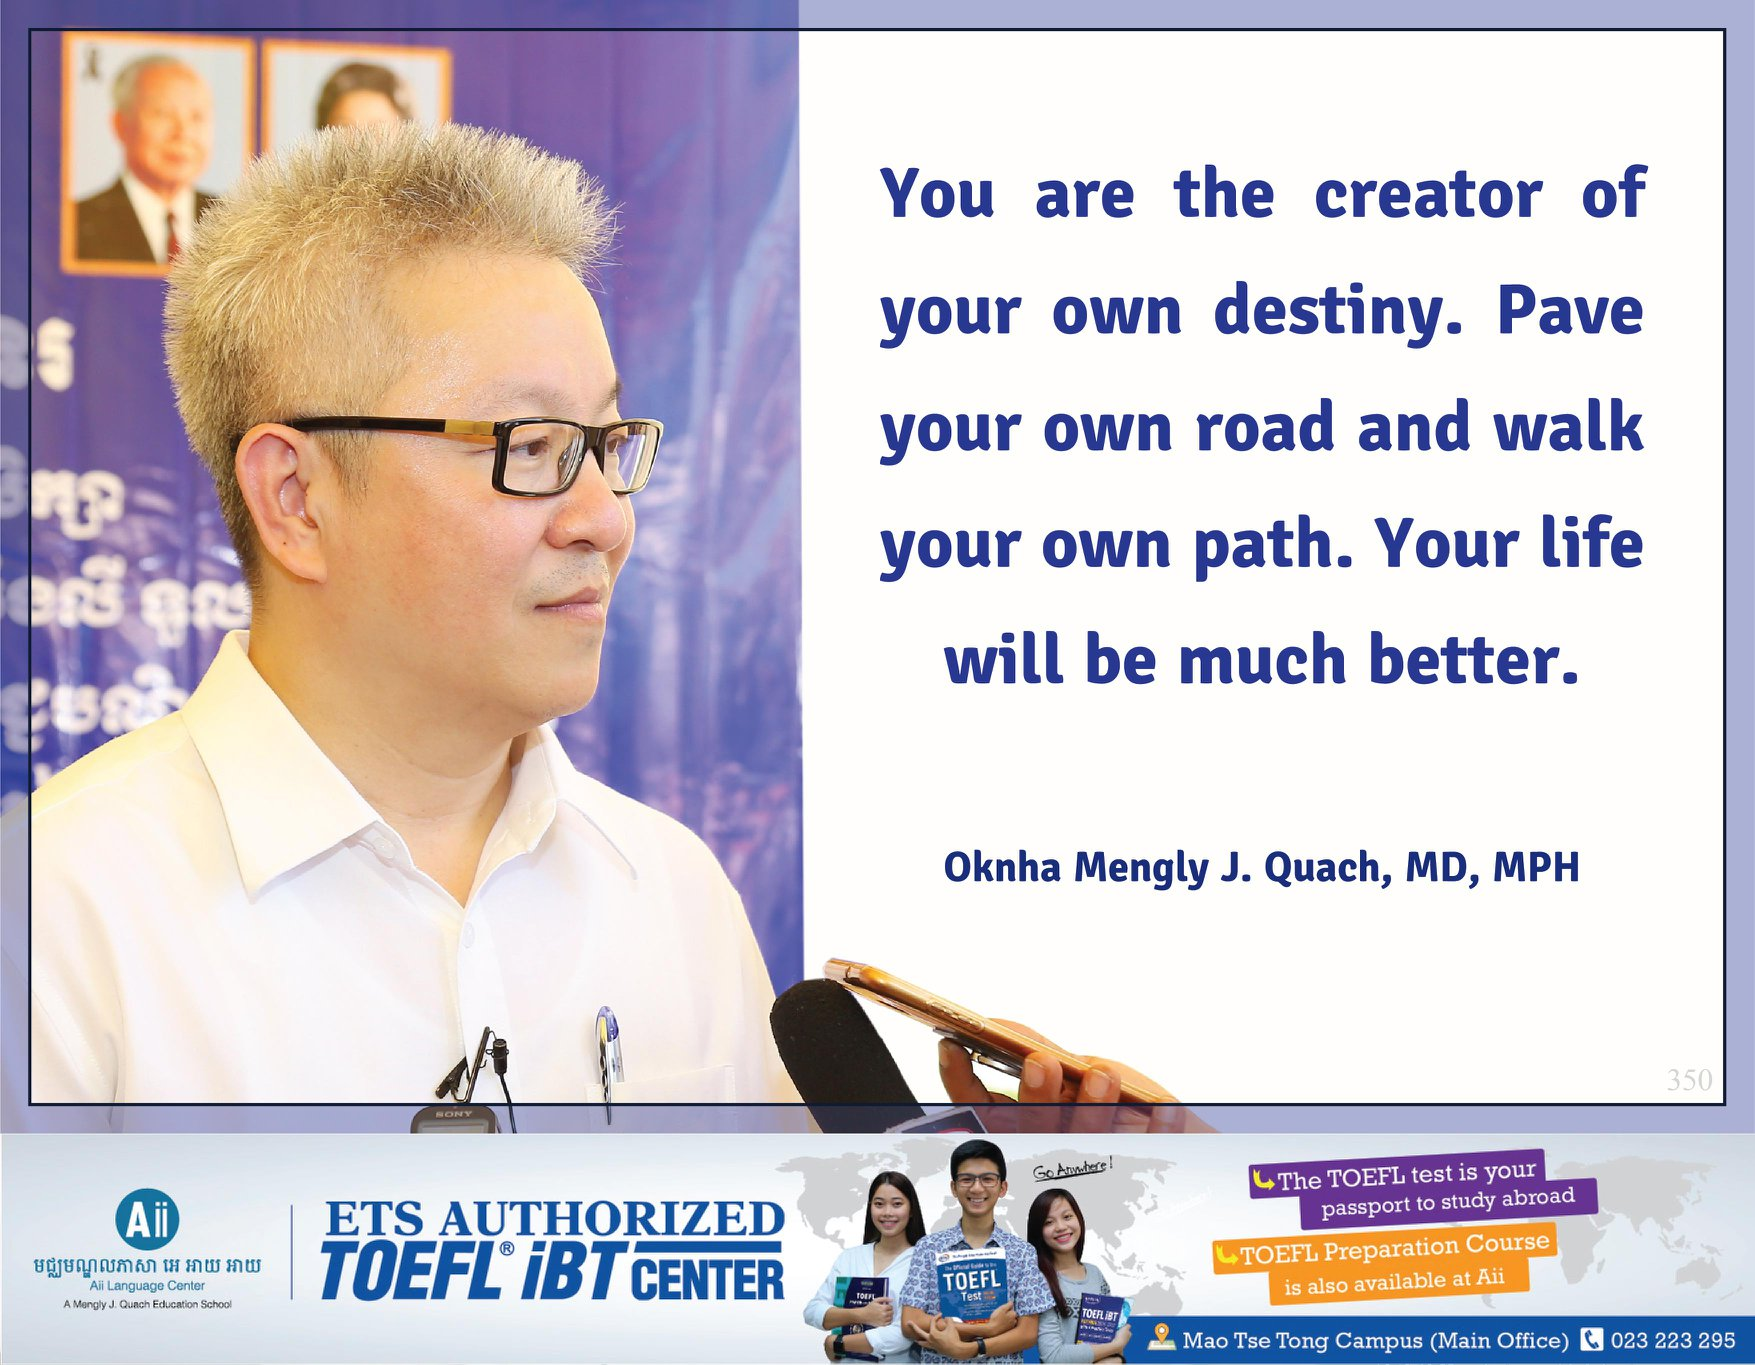 You Are The Creator Of Your Own Destiny. Pave Your Own Road And Walk Your Own Path. Your Life Will Be Much Better.